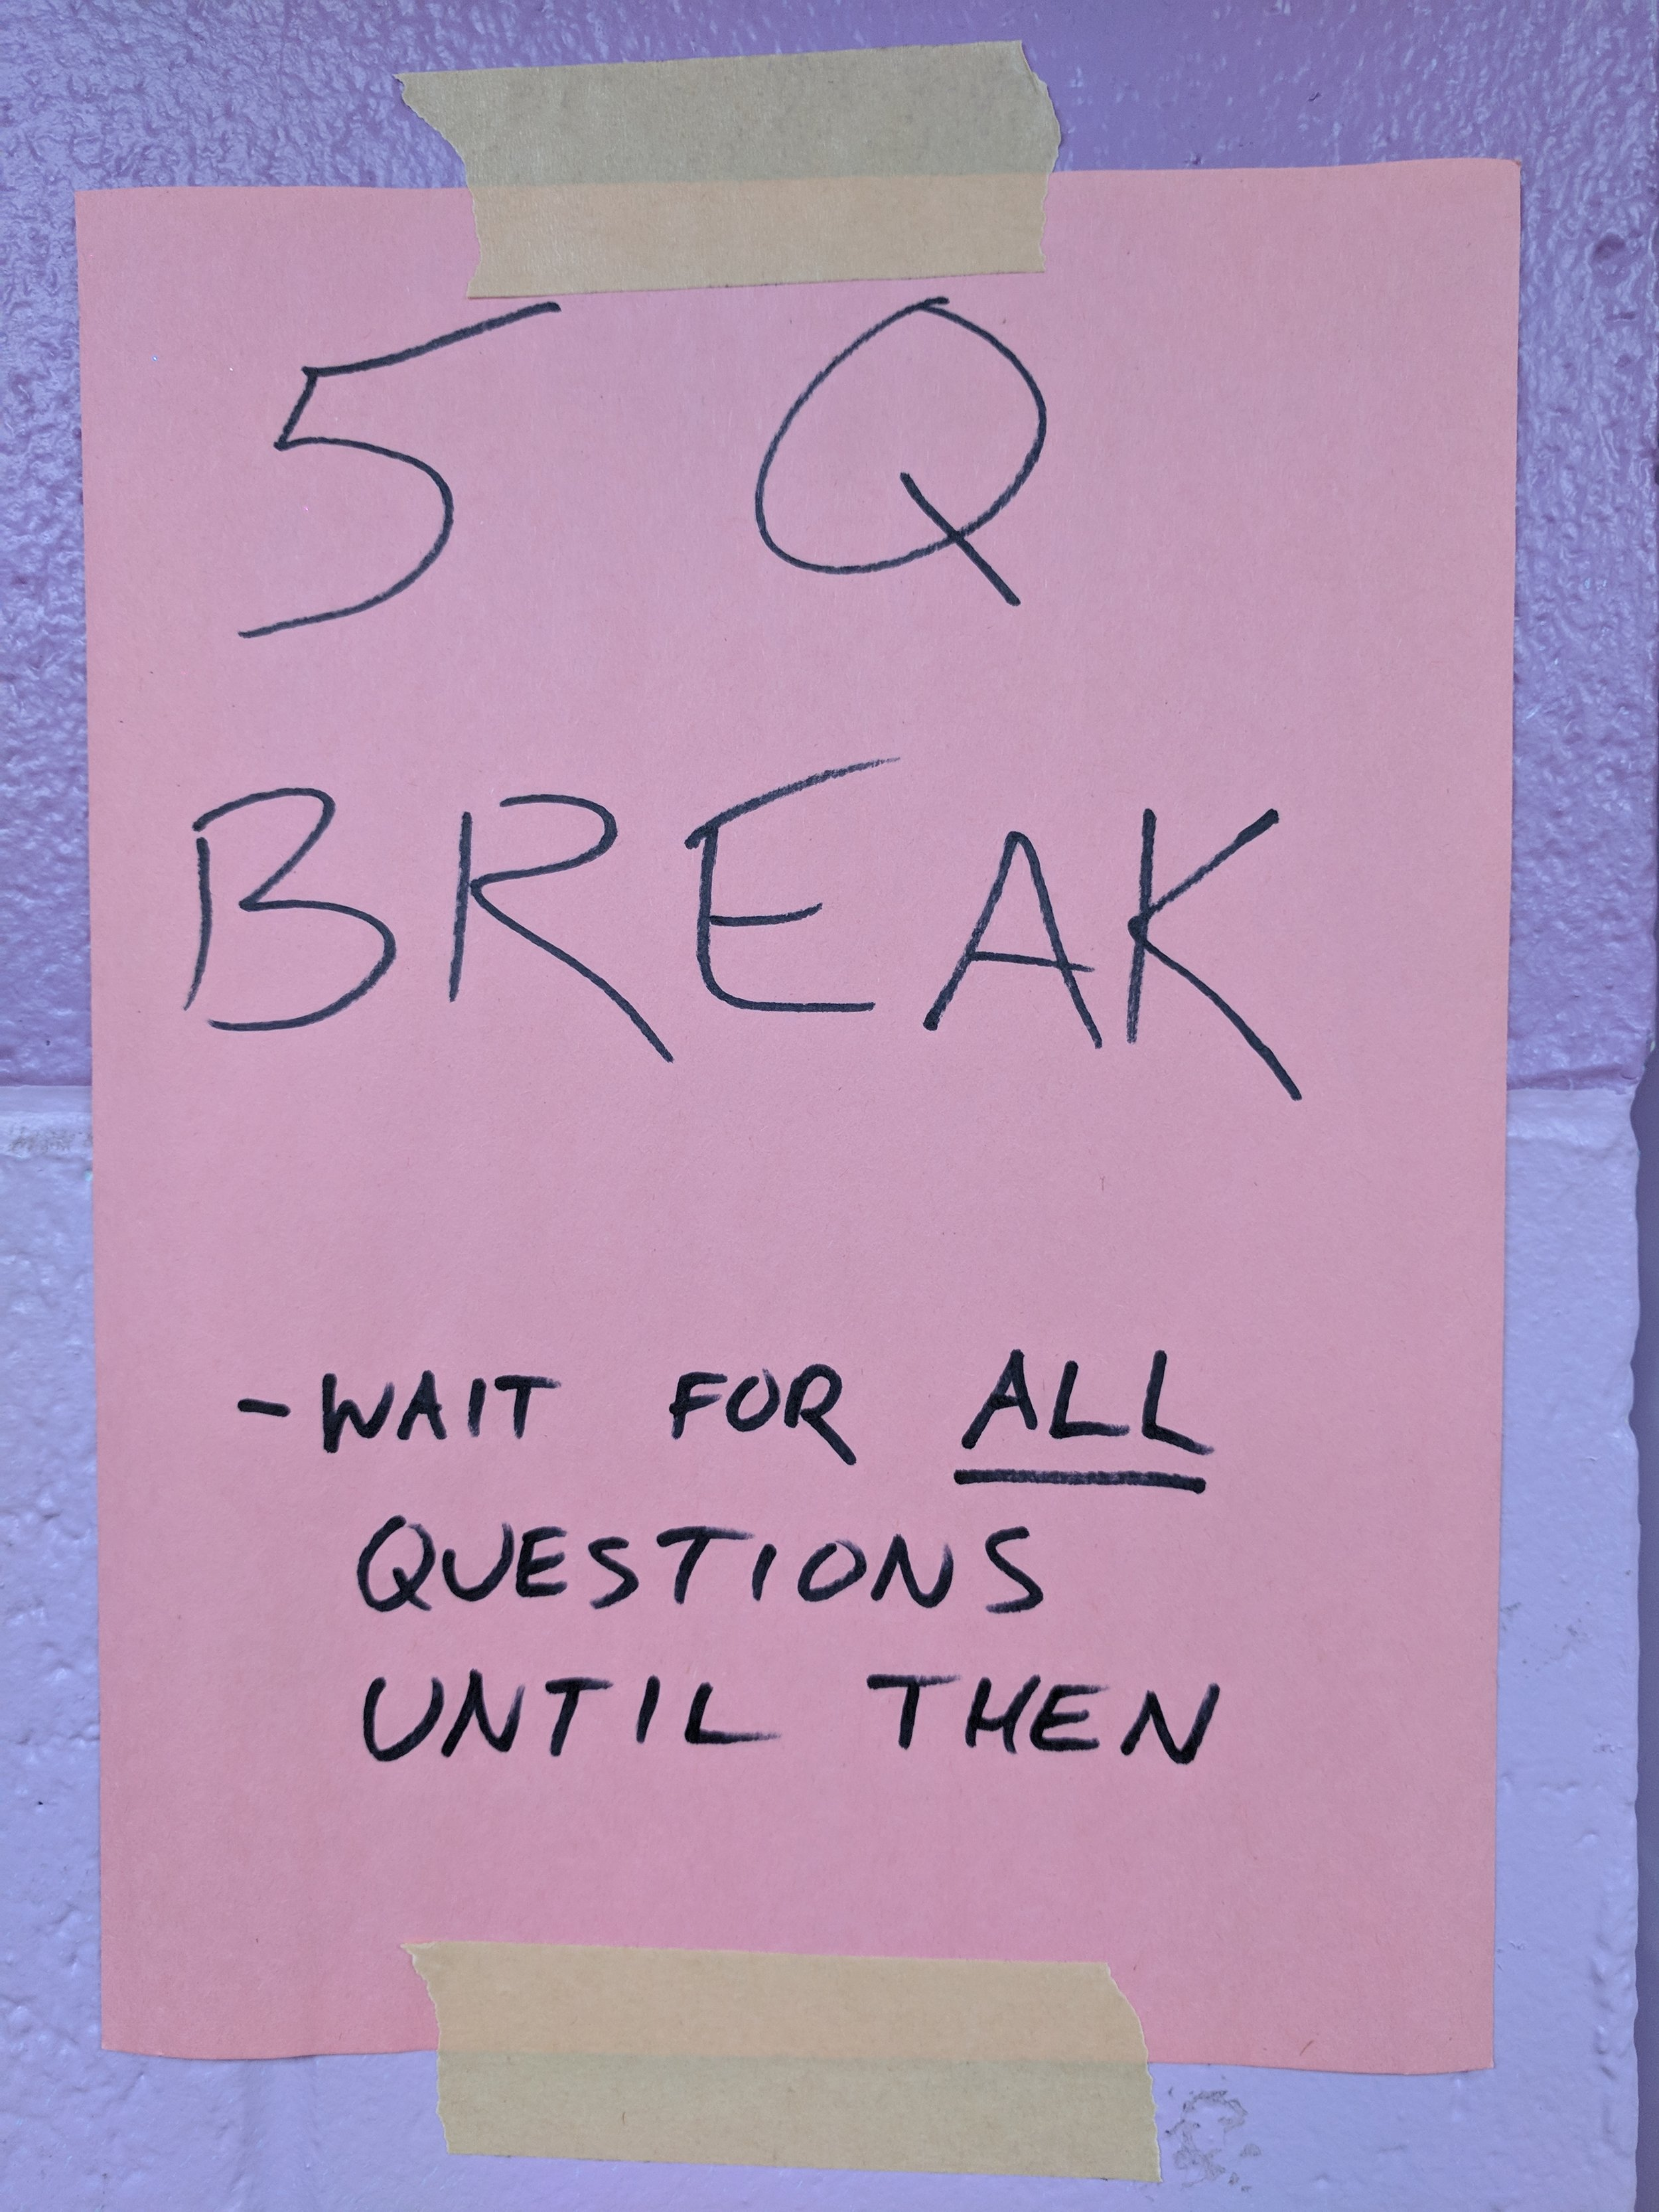 Post in front of your classroom or group space